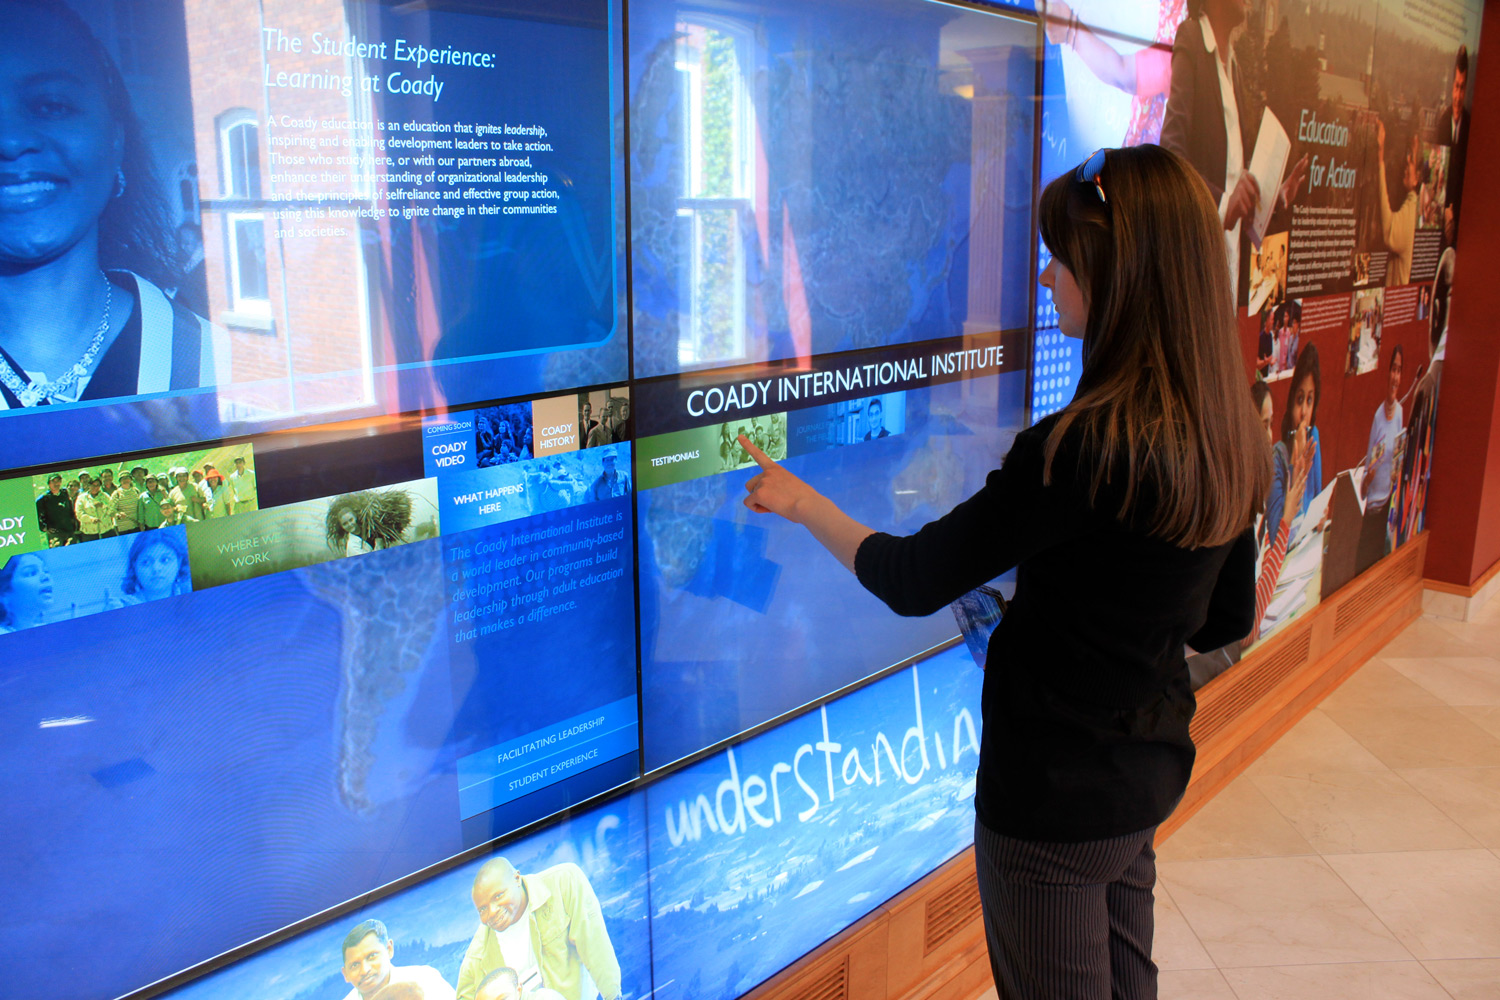 STUDENT EXPERIENCE AT YOUR FINGERTIPS A wall of touchscreens invites students to record impressions of their time at the Institute through video, and to retrieve testimonials and photos from previous students.